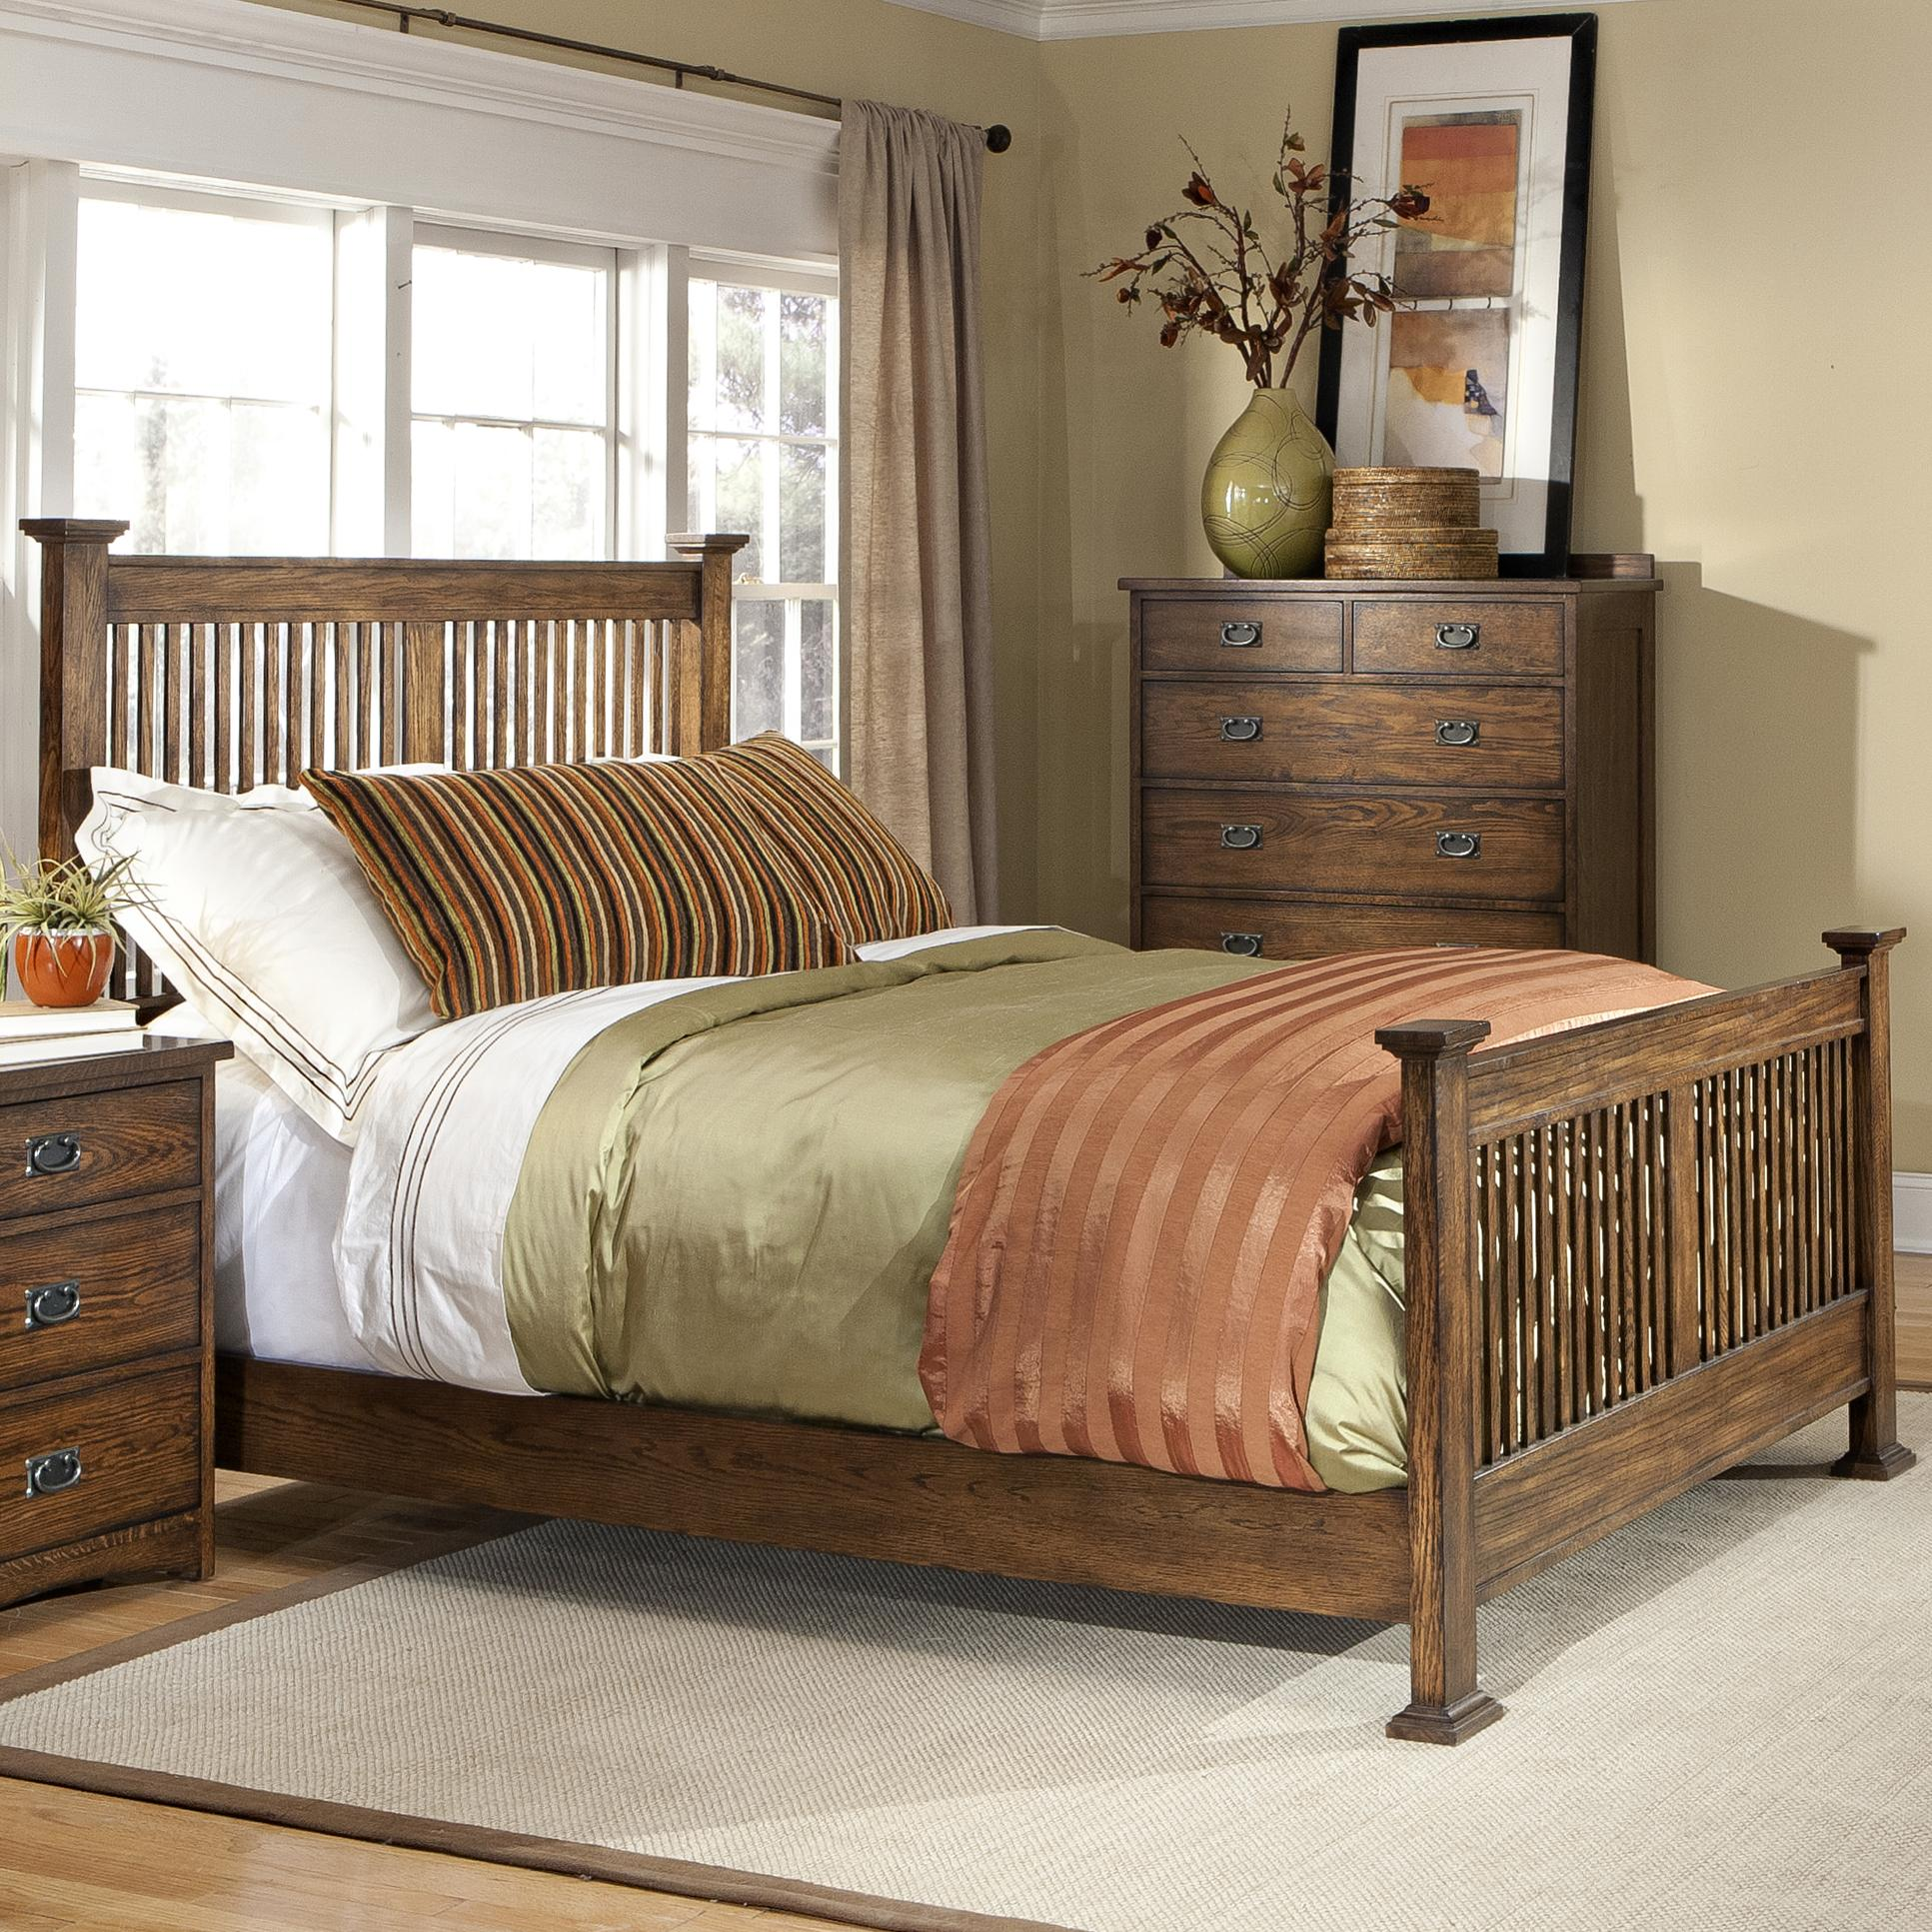 Intercon Oak Park Solid Oak Mission Bed - Item Number: OP-BR-5825Q-MIS-C